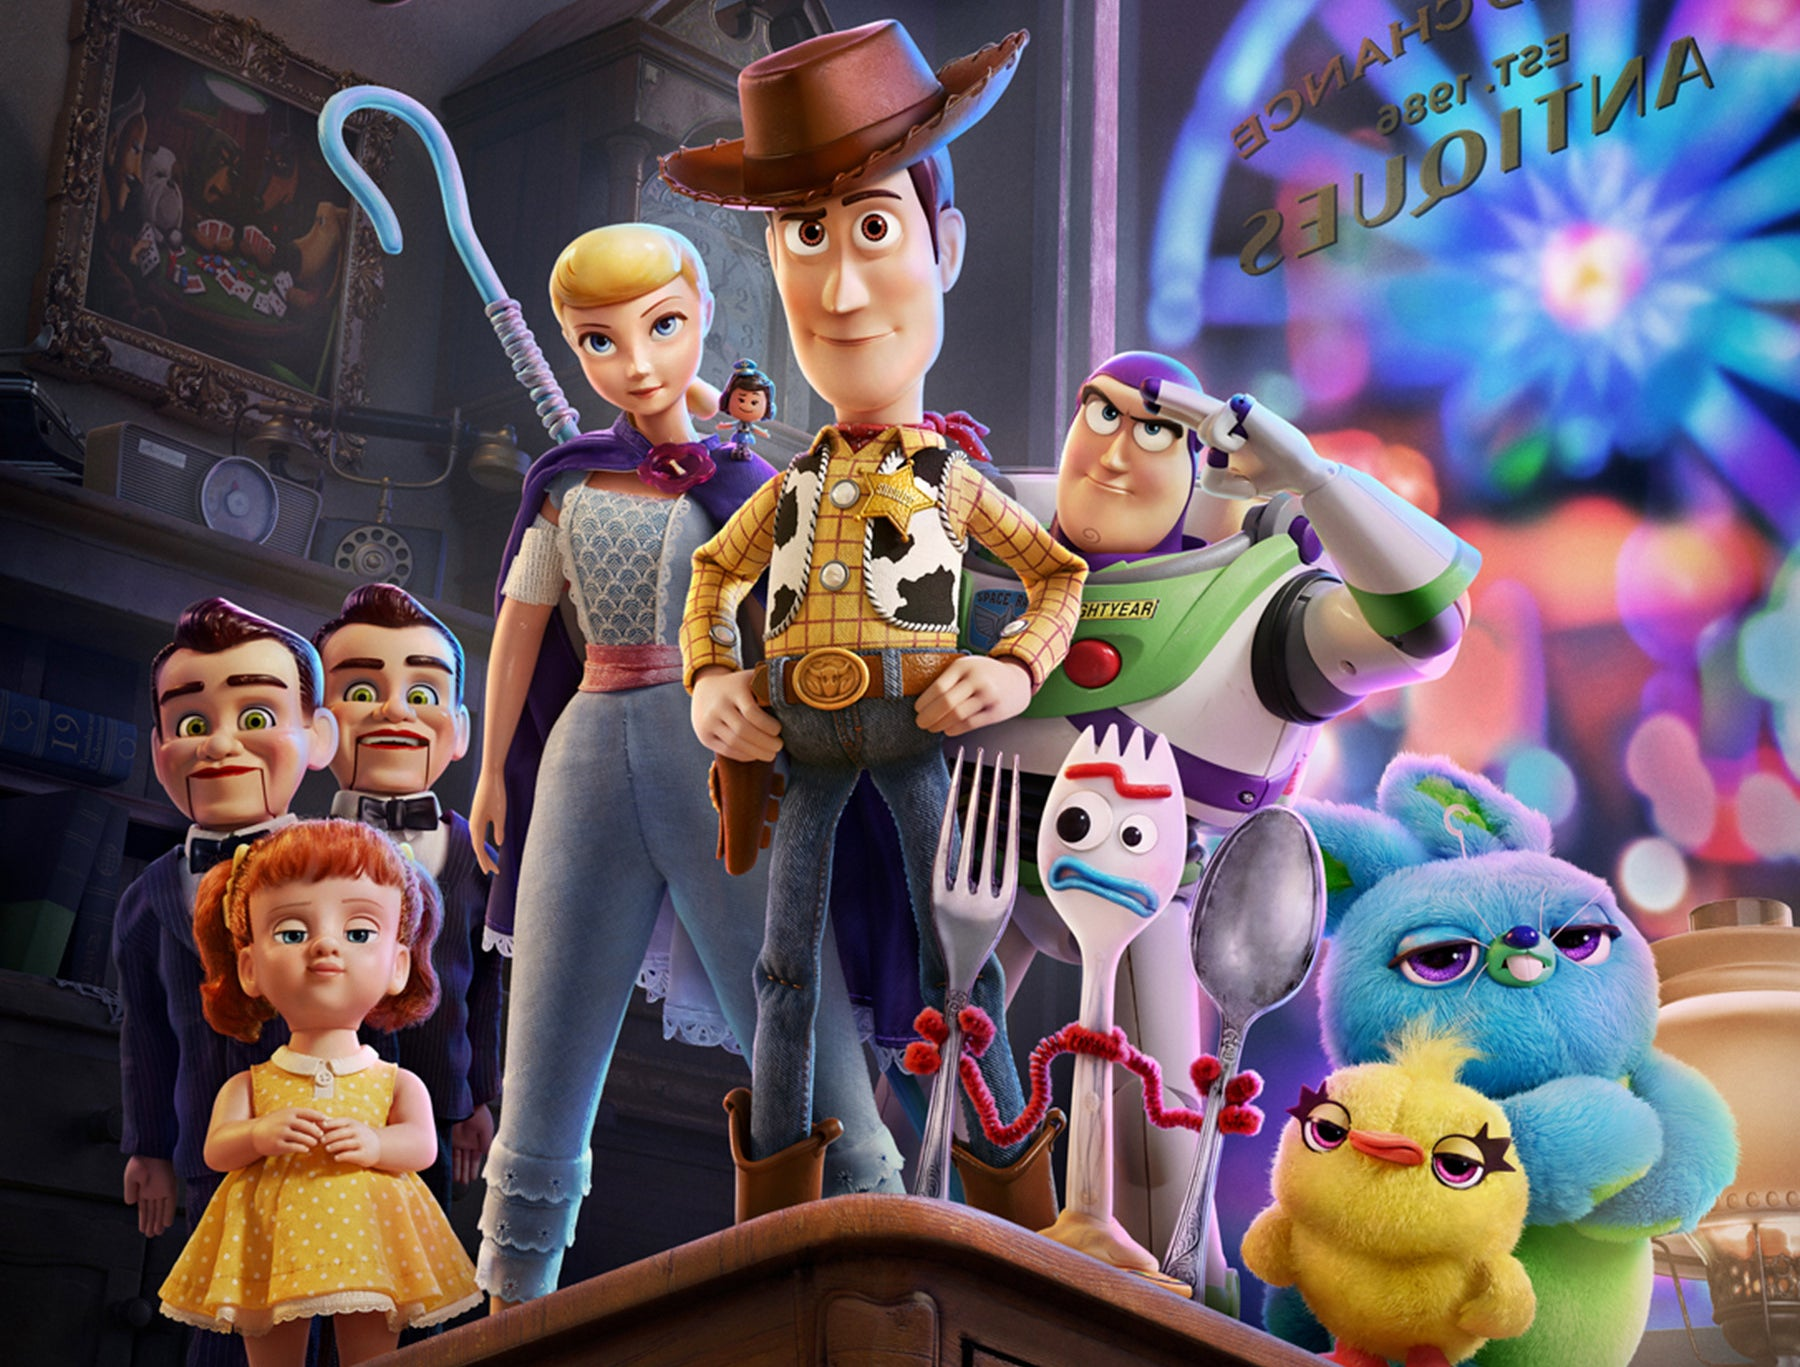 Publicity photo of Toy Story 4 cast